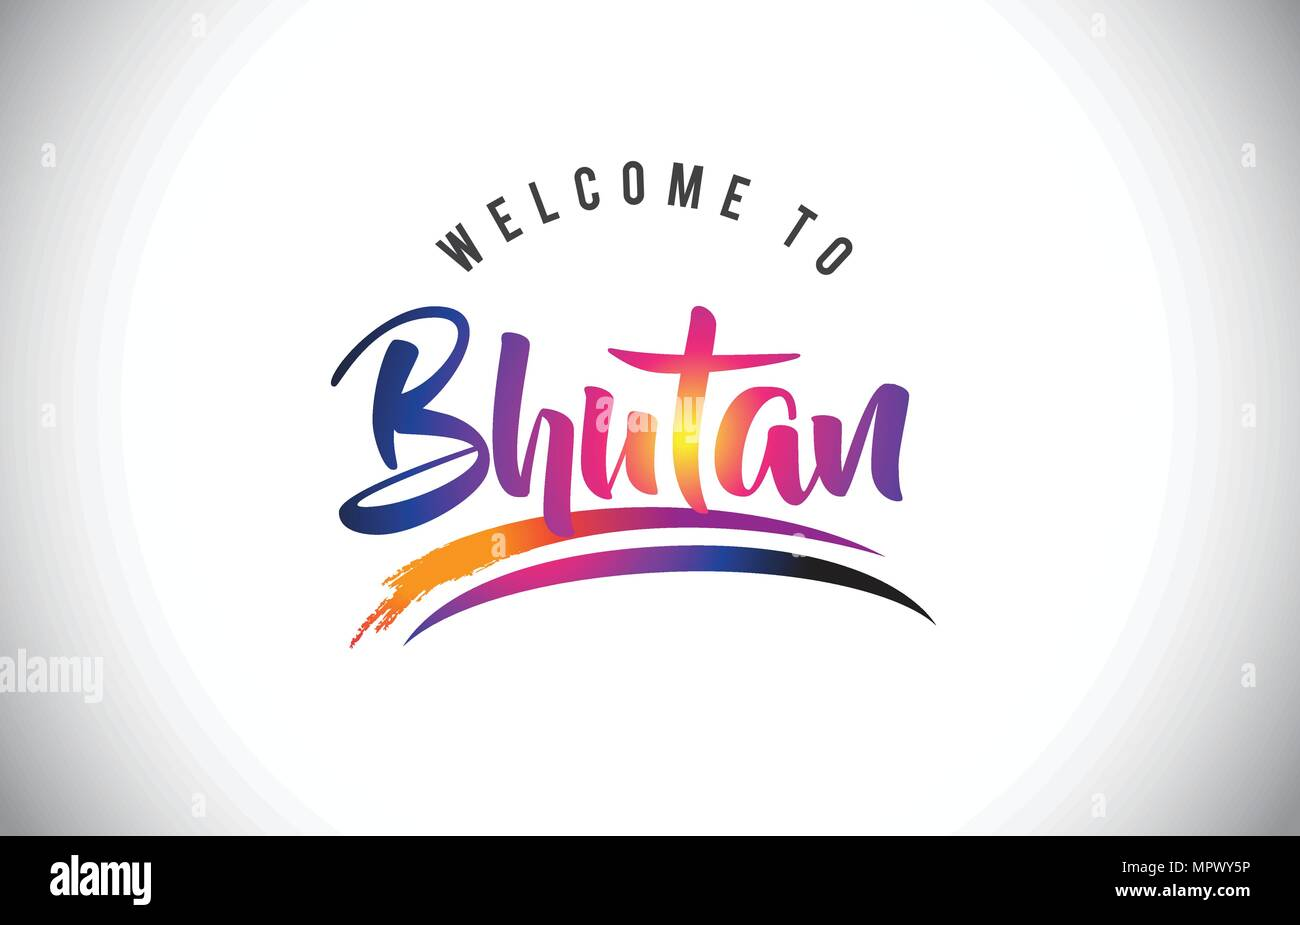 Bhutan Welcome To Message in Purple Vibrant Modern Colors Vector Illustration. - Stock Vector